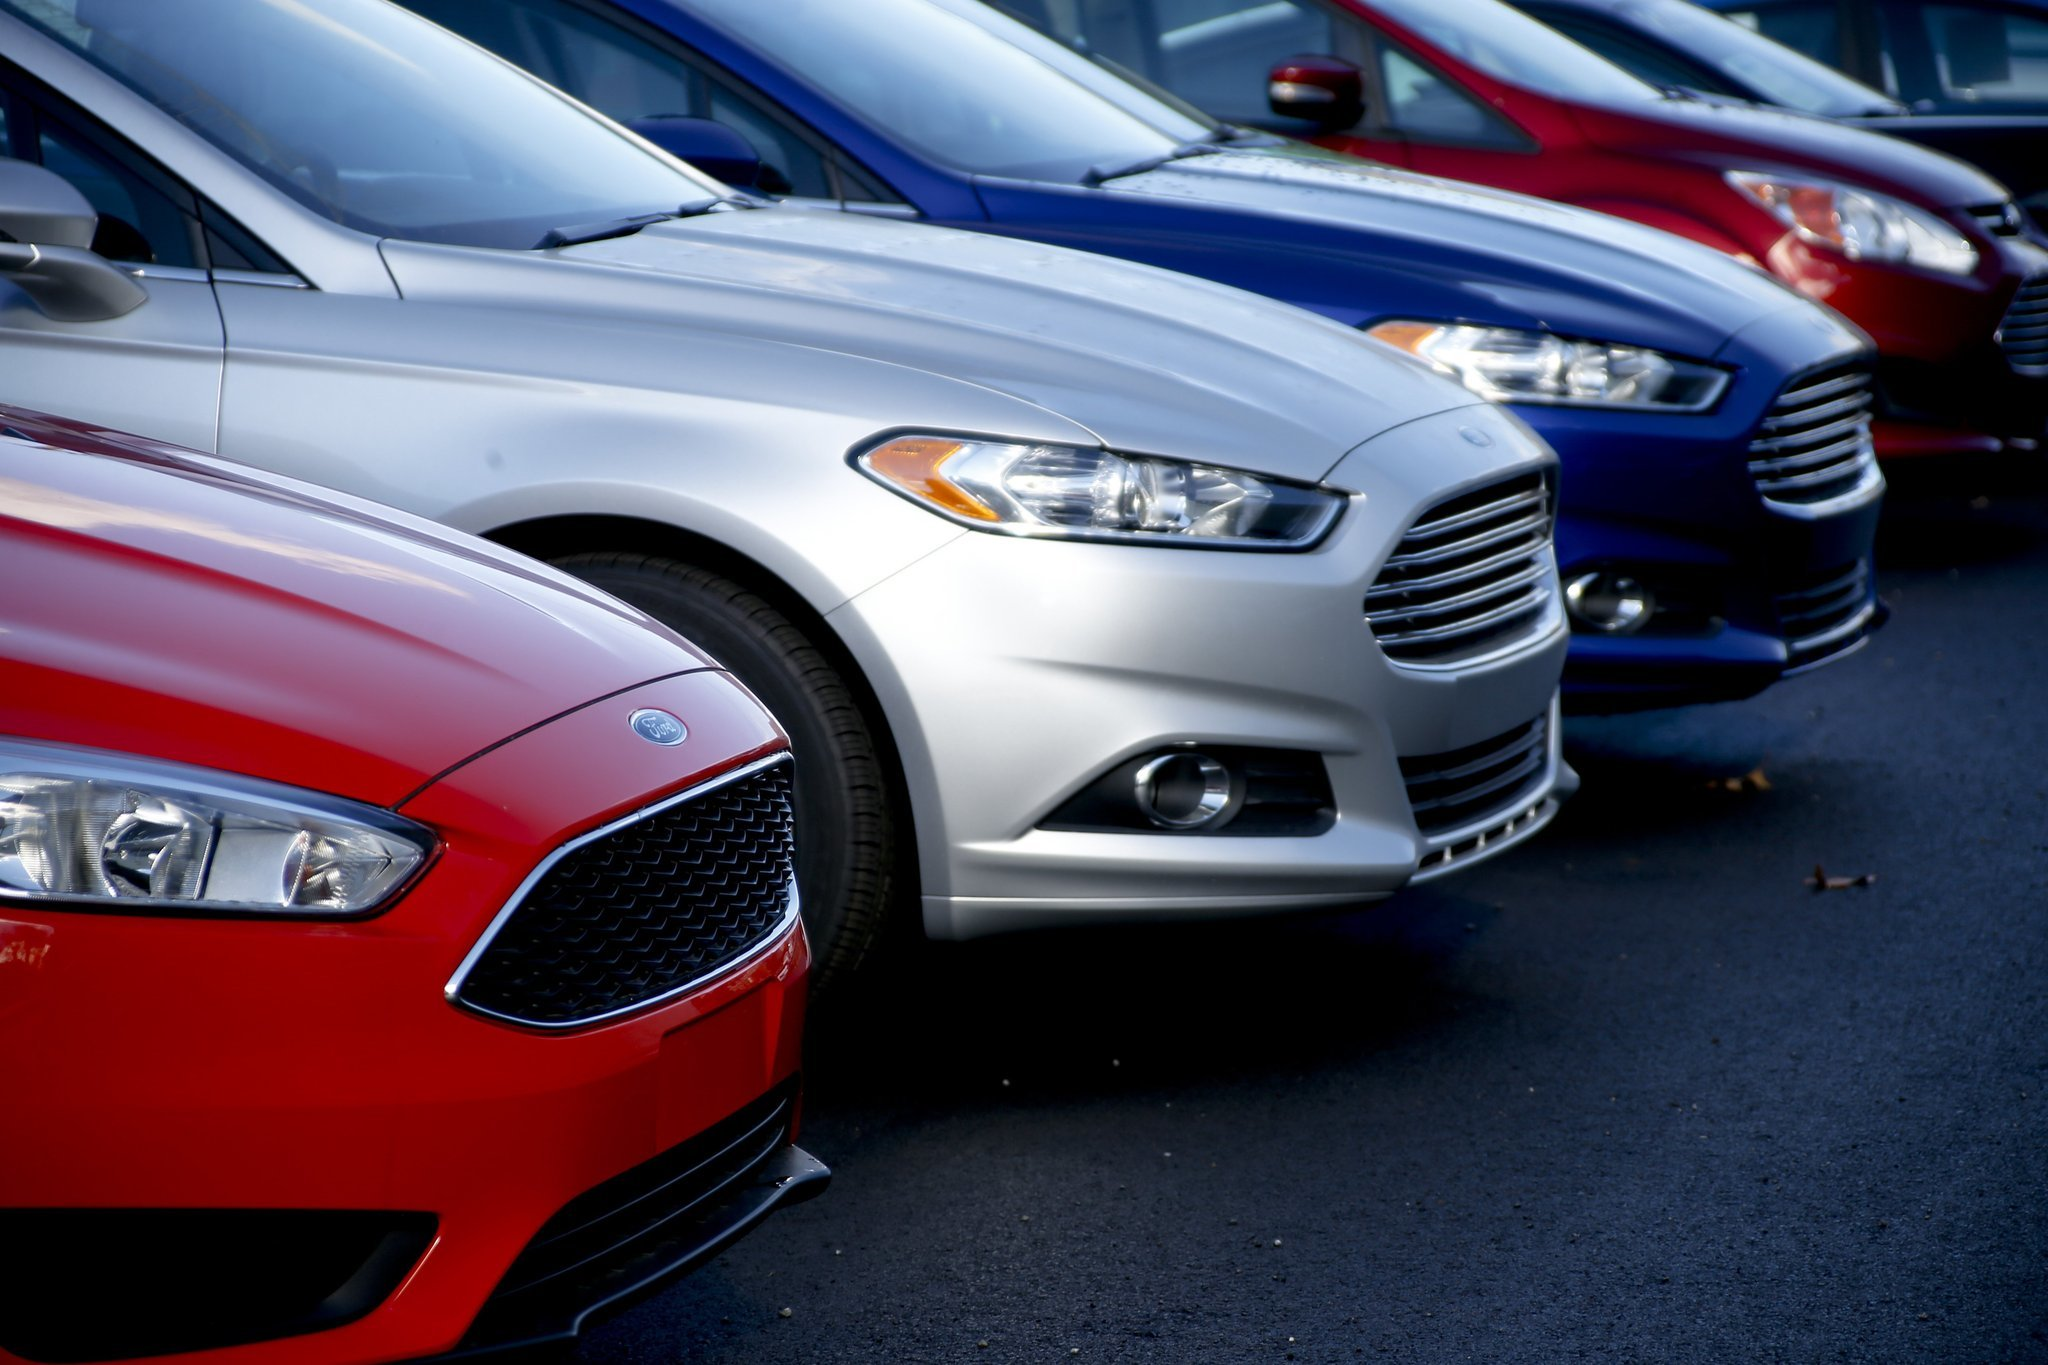 U.S. auto sales report big numbers, best month in 10 years